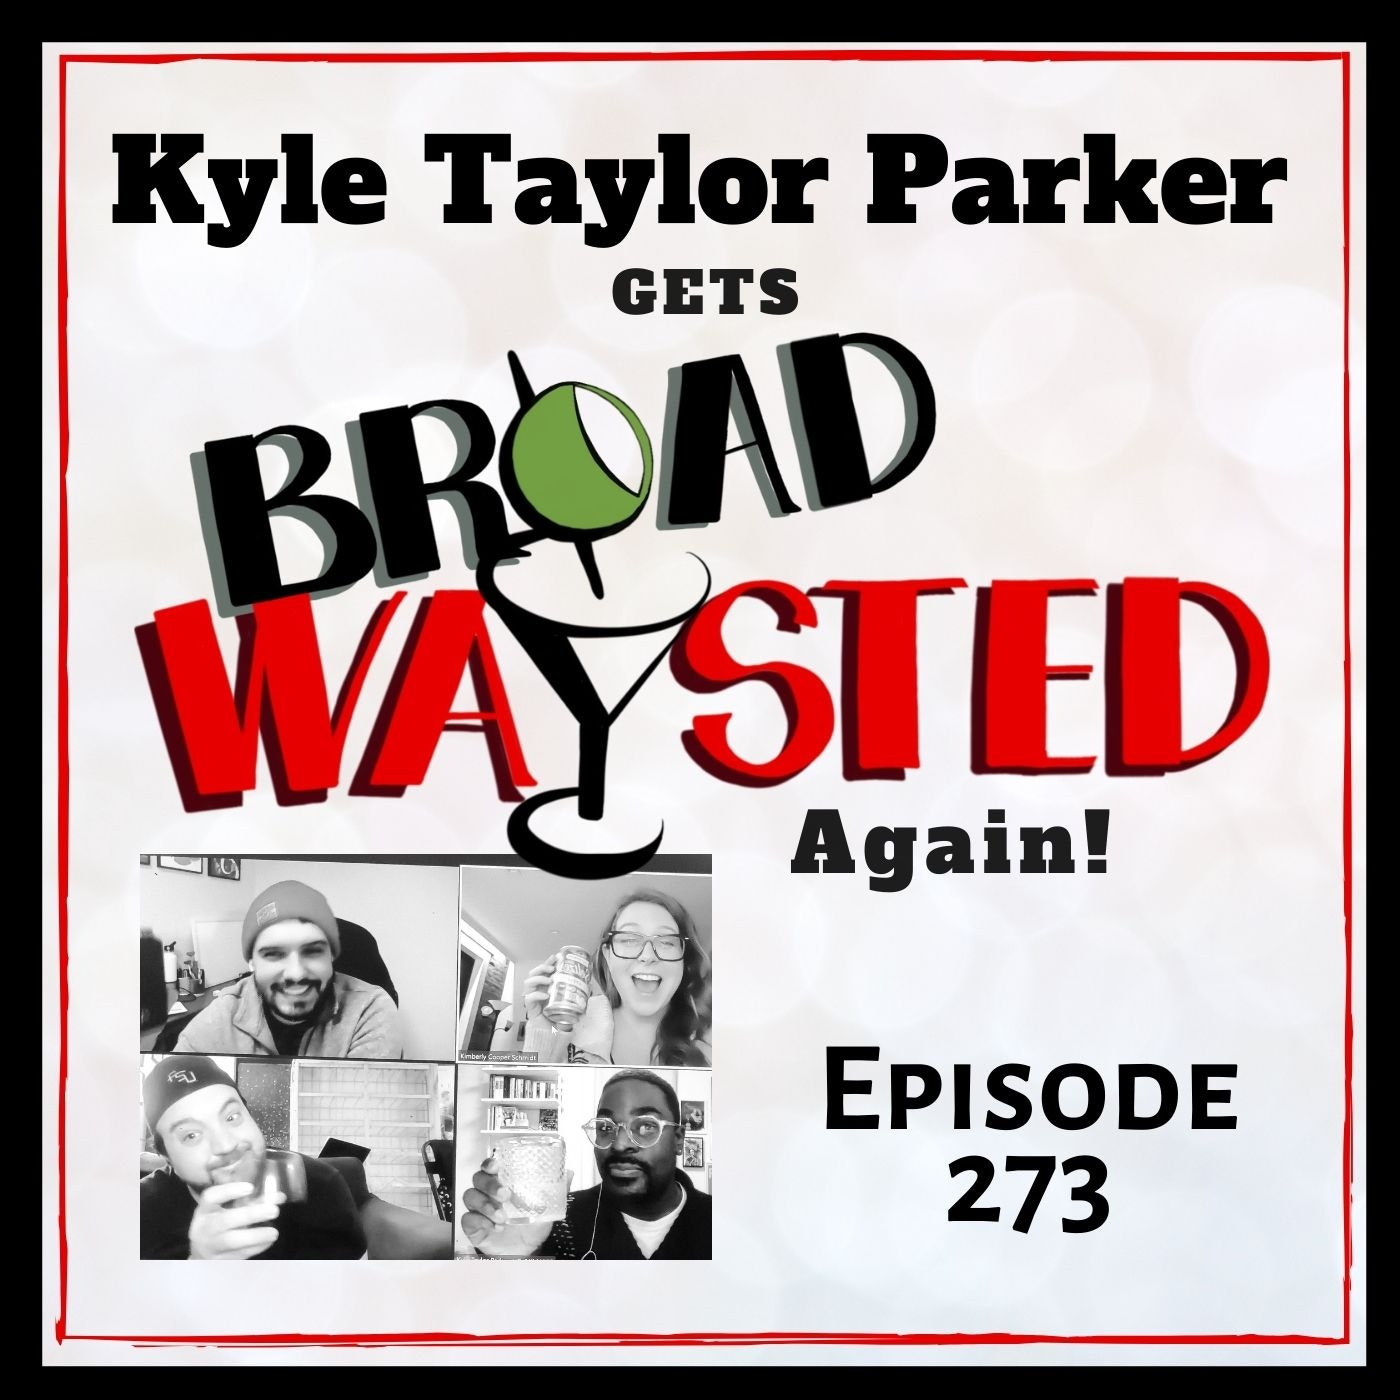 Episode 273: Kyle Taylor Paker gets Broadwaysted, again!